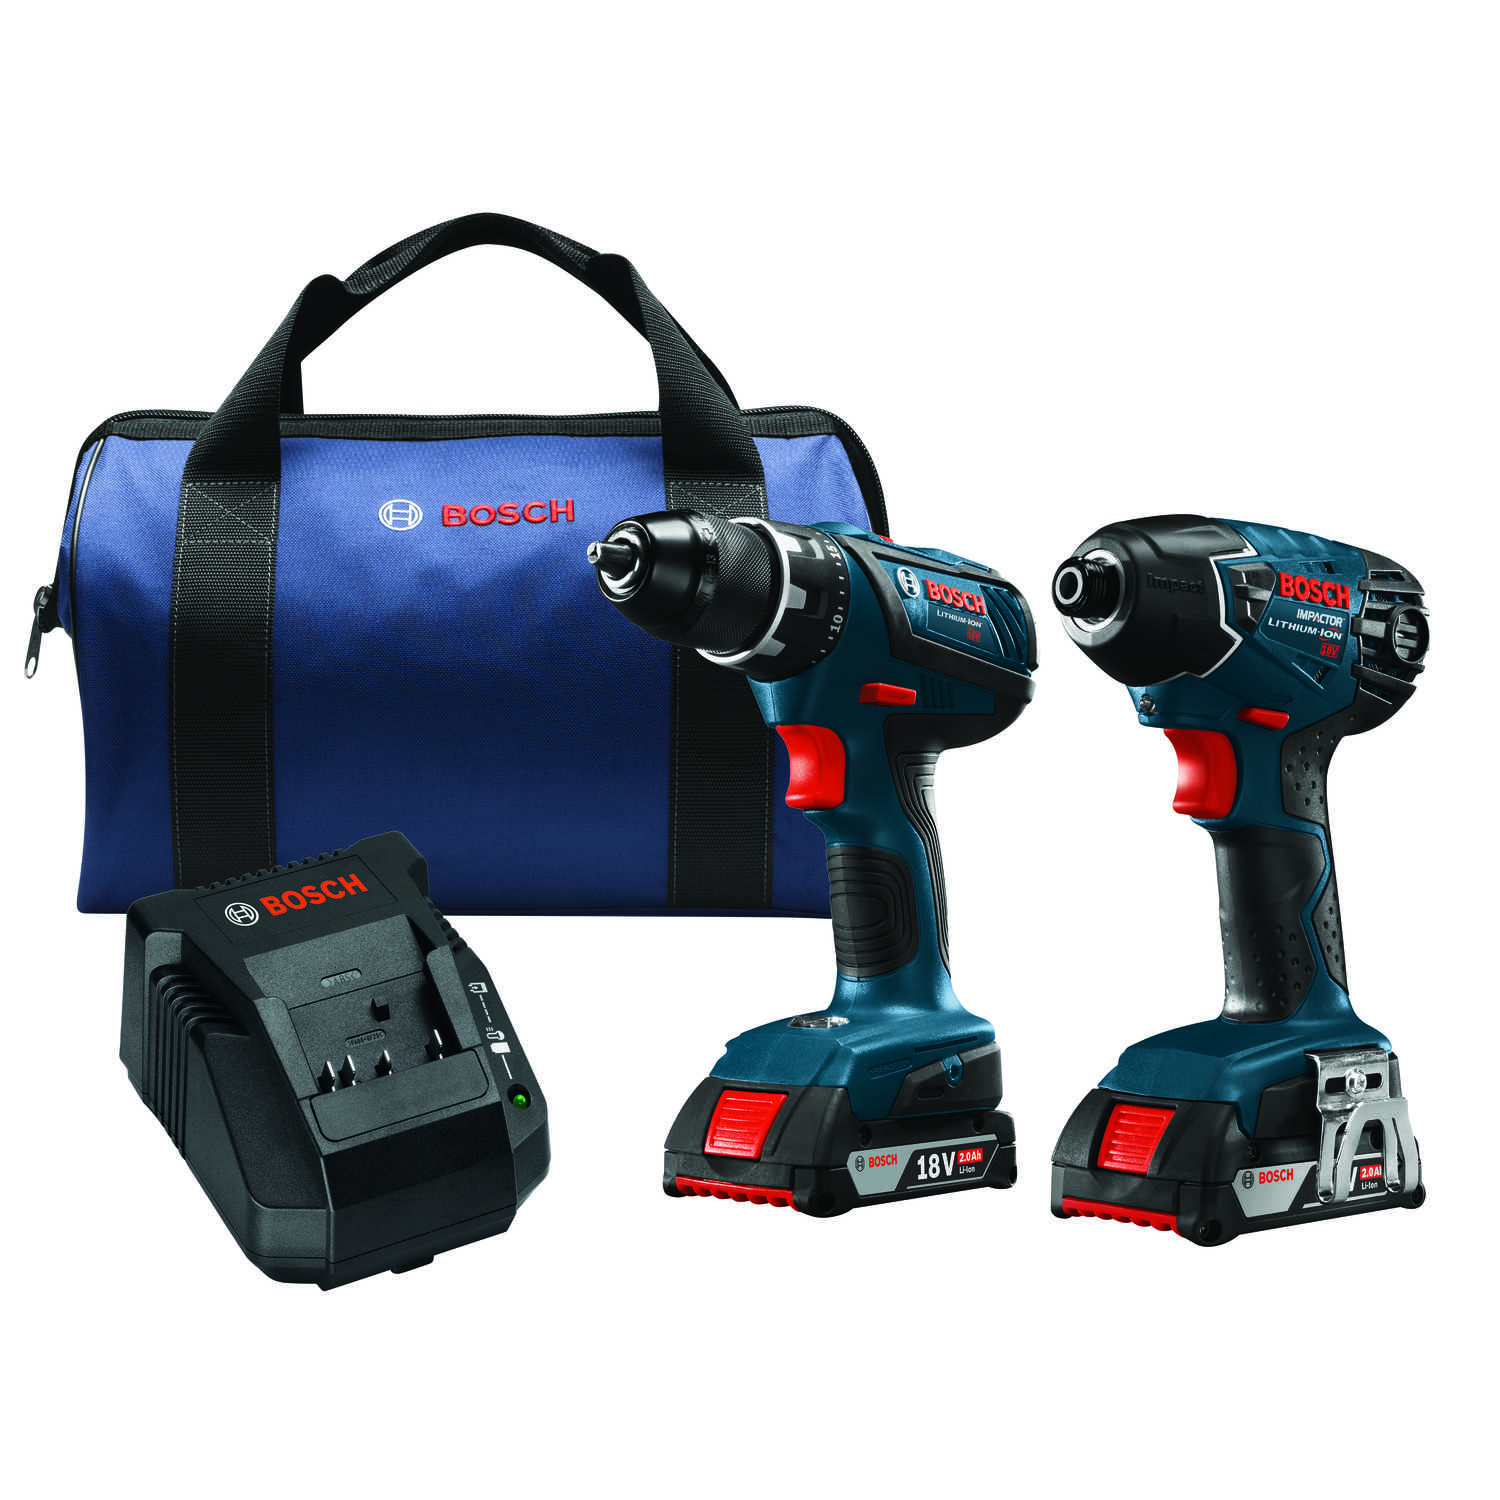 Bosch  Compact Tough  Cordless  Drill/Driver and Impact Driver Combo Kit  18 volt